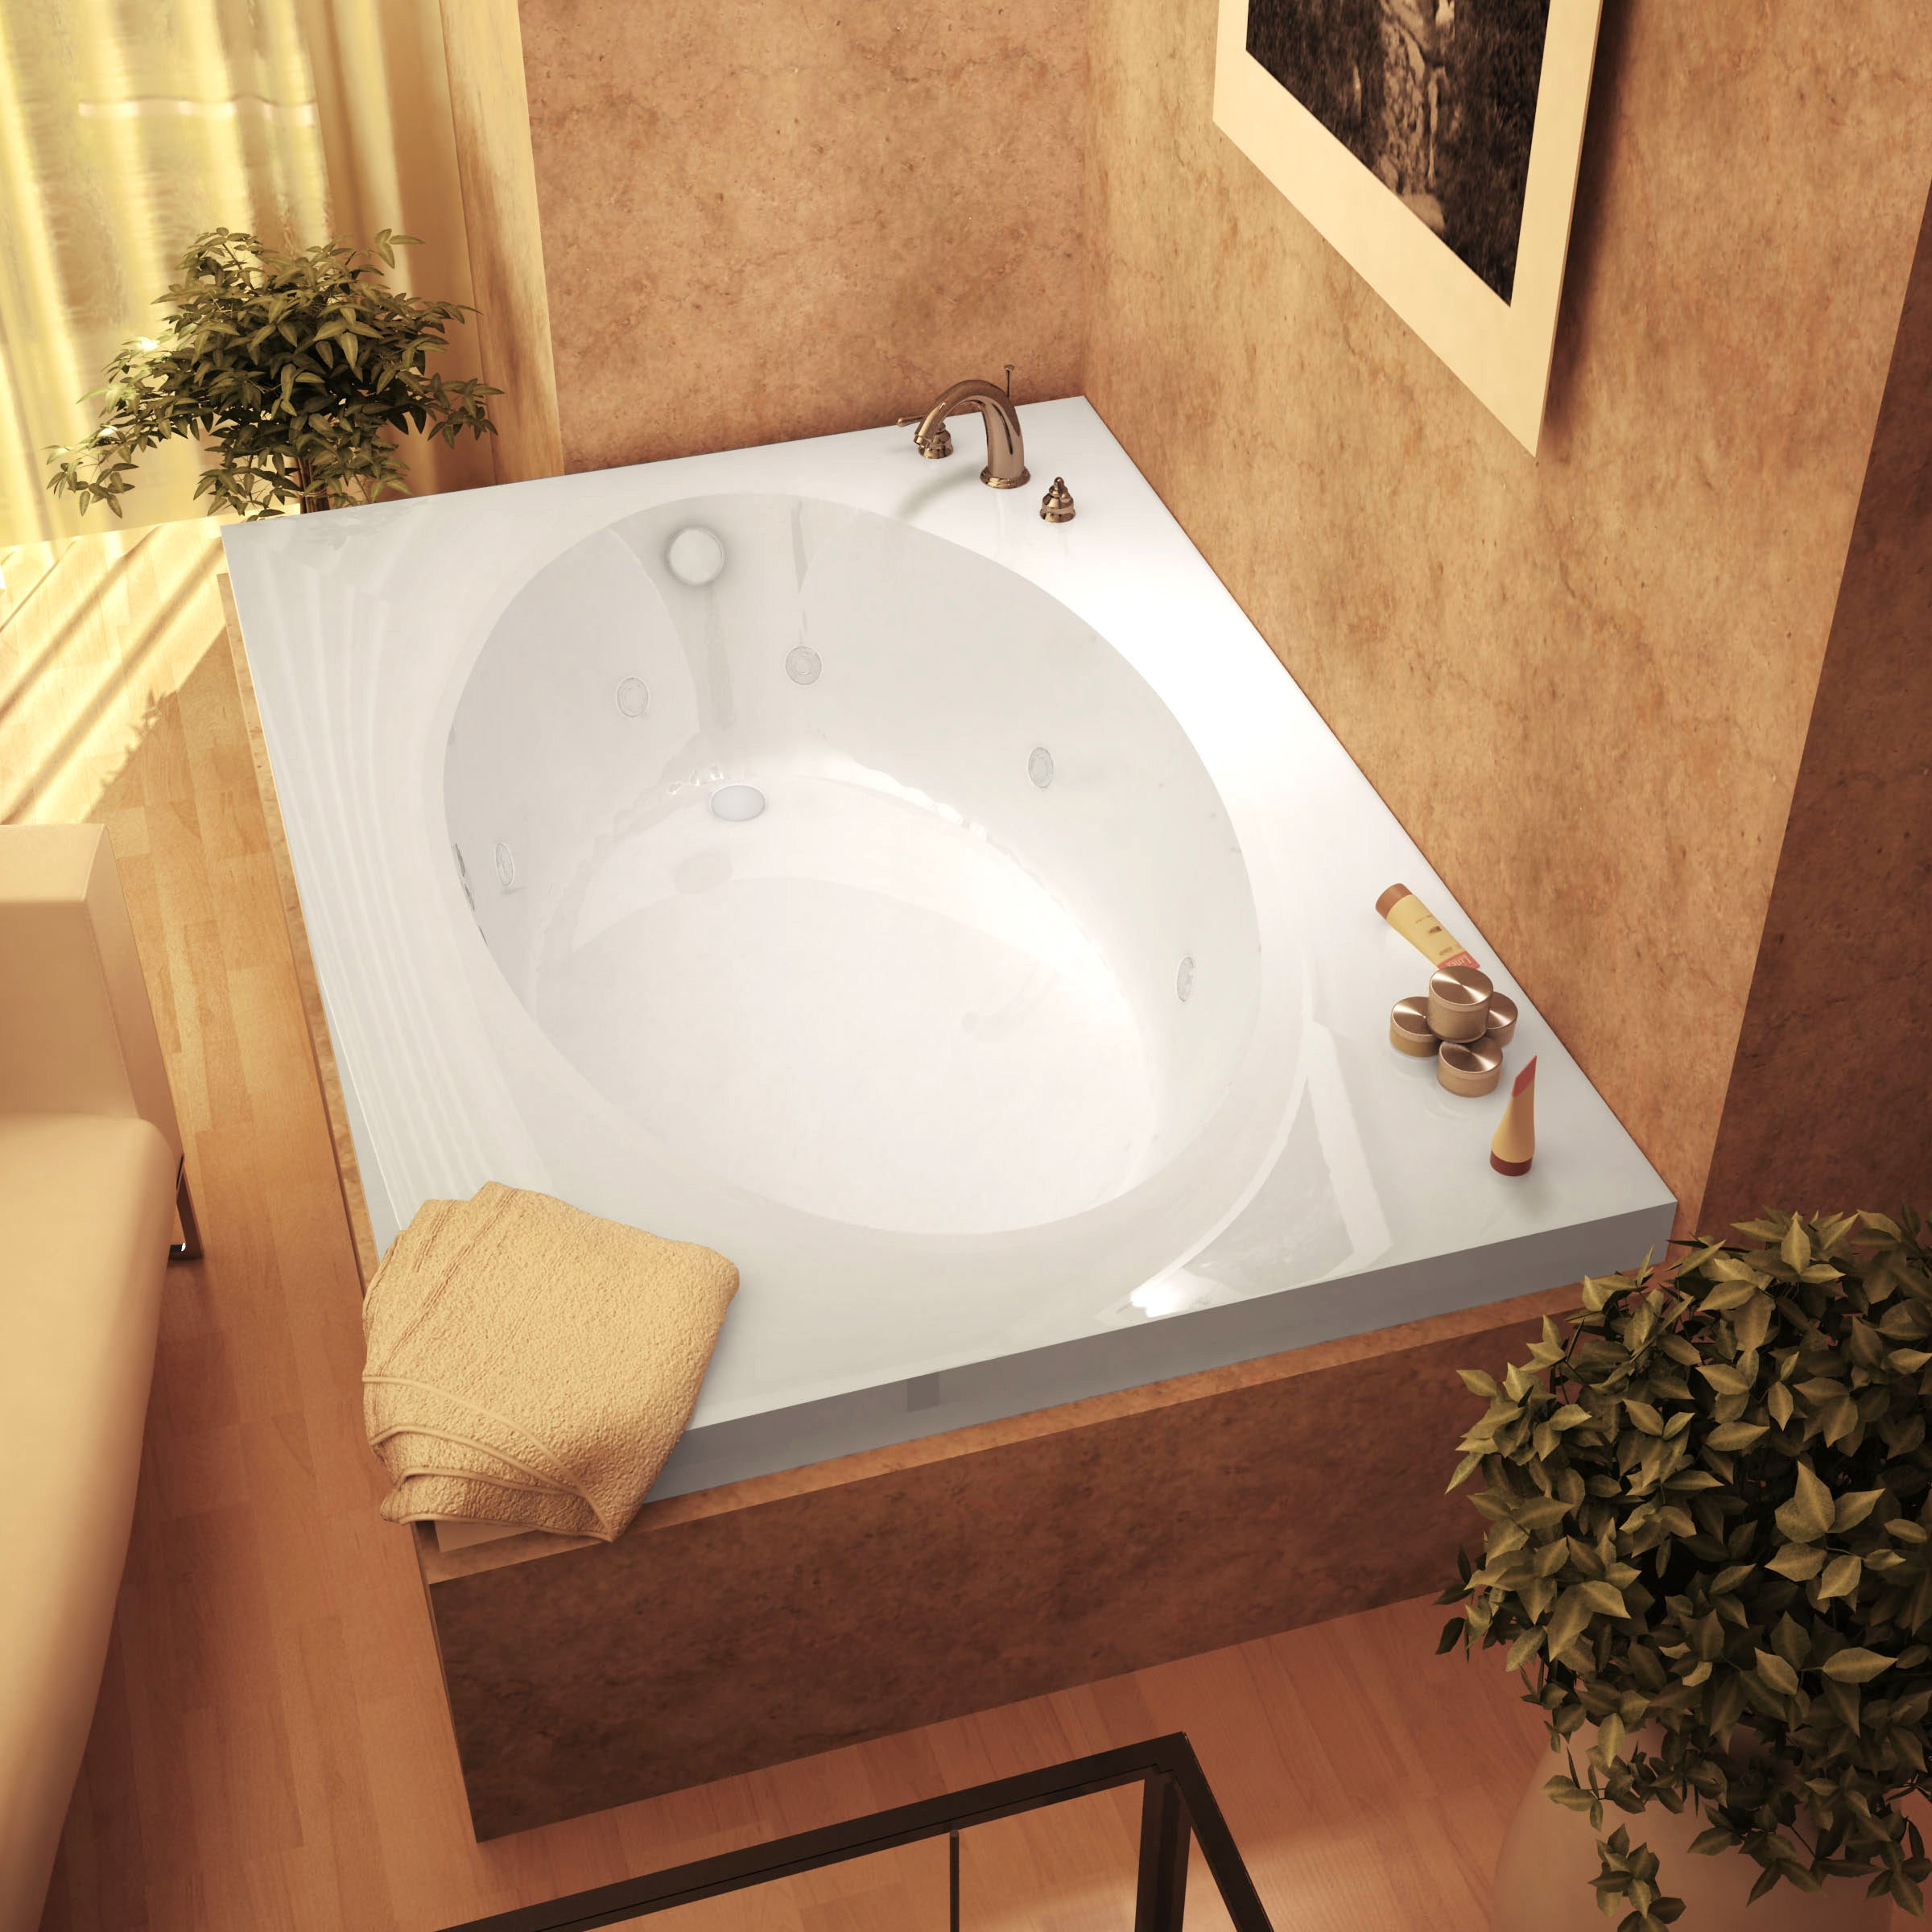 Shop Mountain Home Vail 43x84-inch Acrylic Whirlpool Jetted Drop-in ...